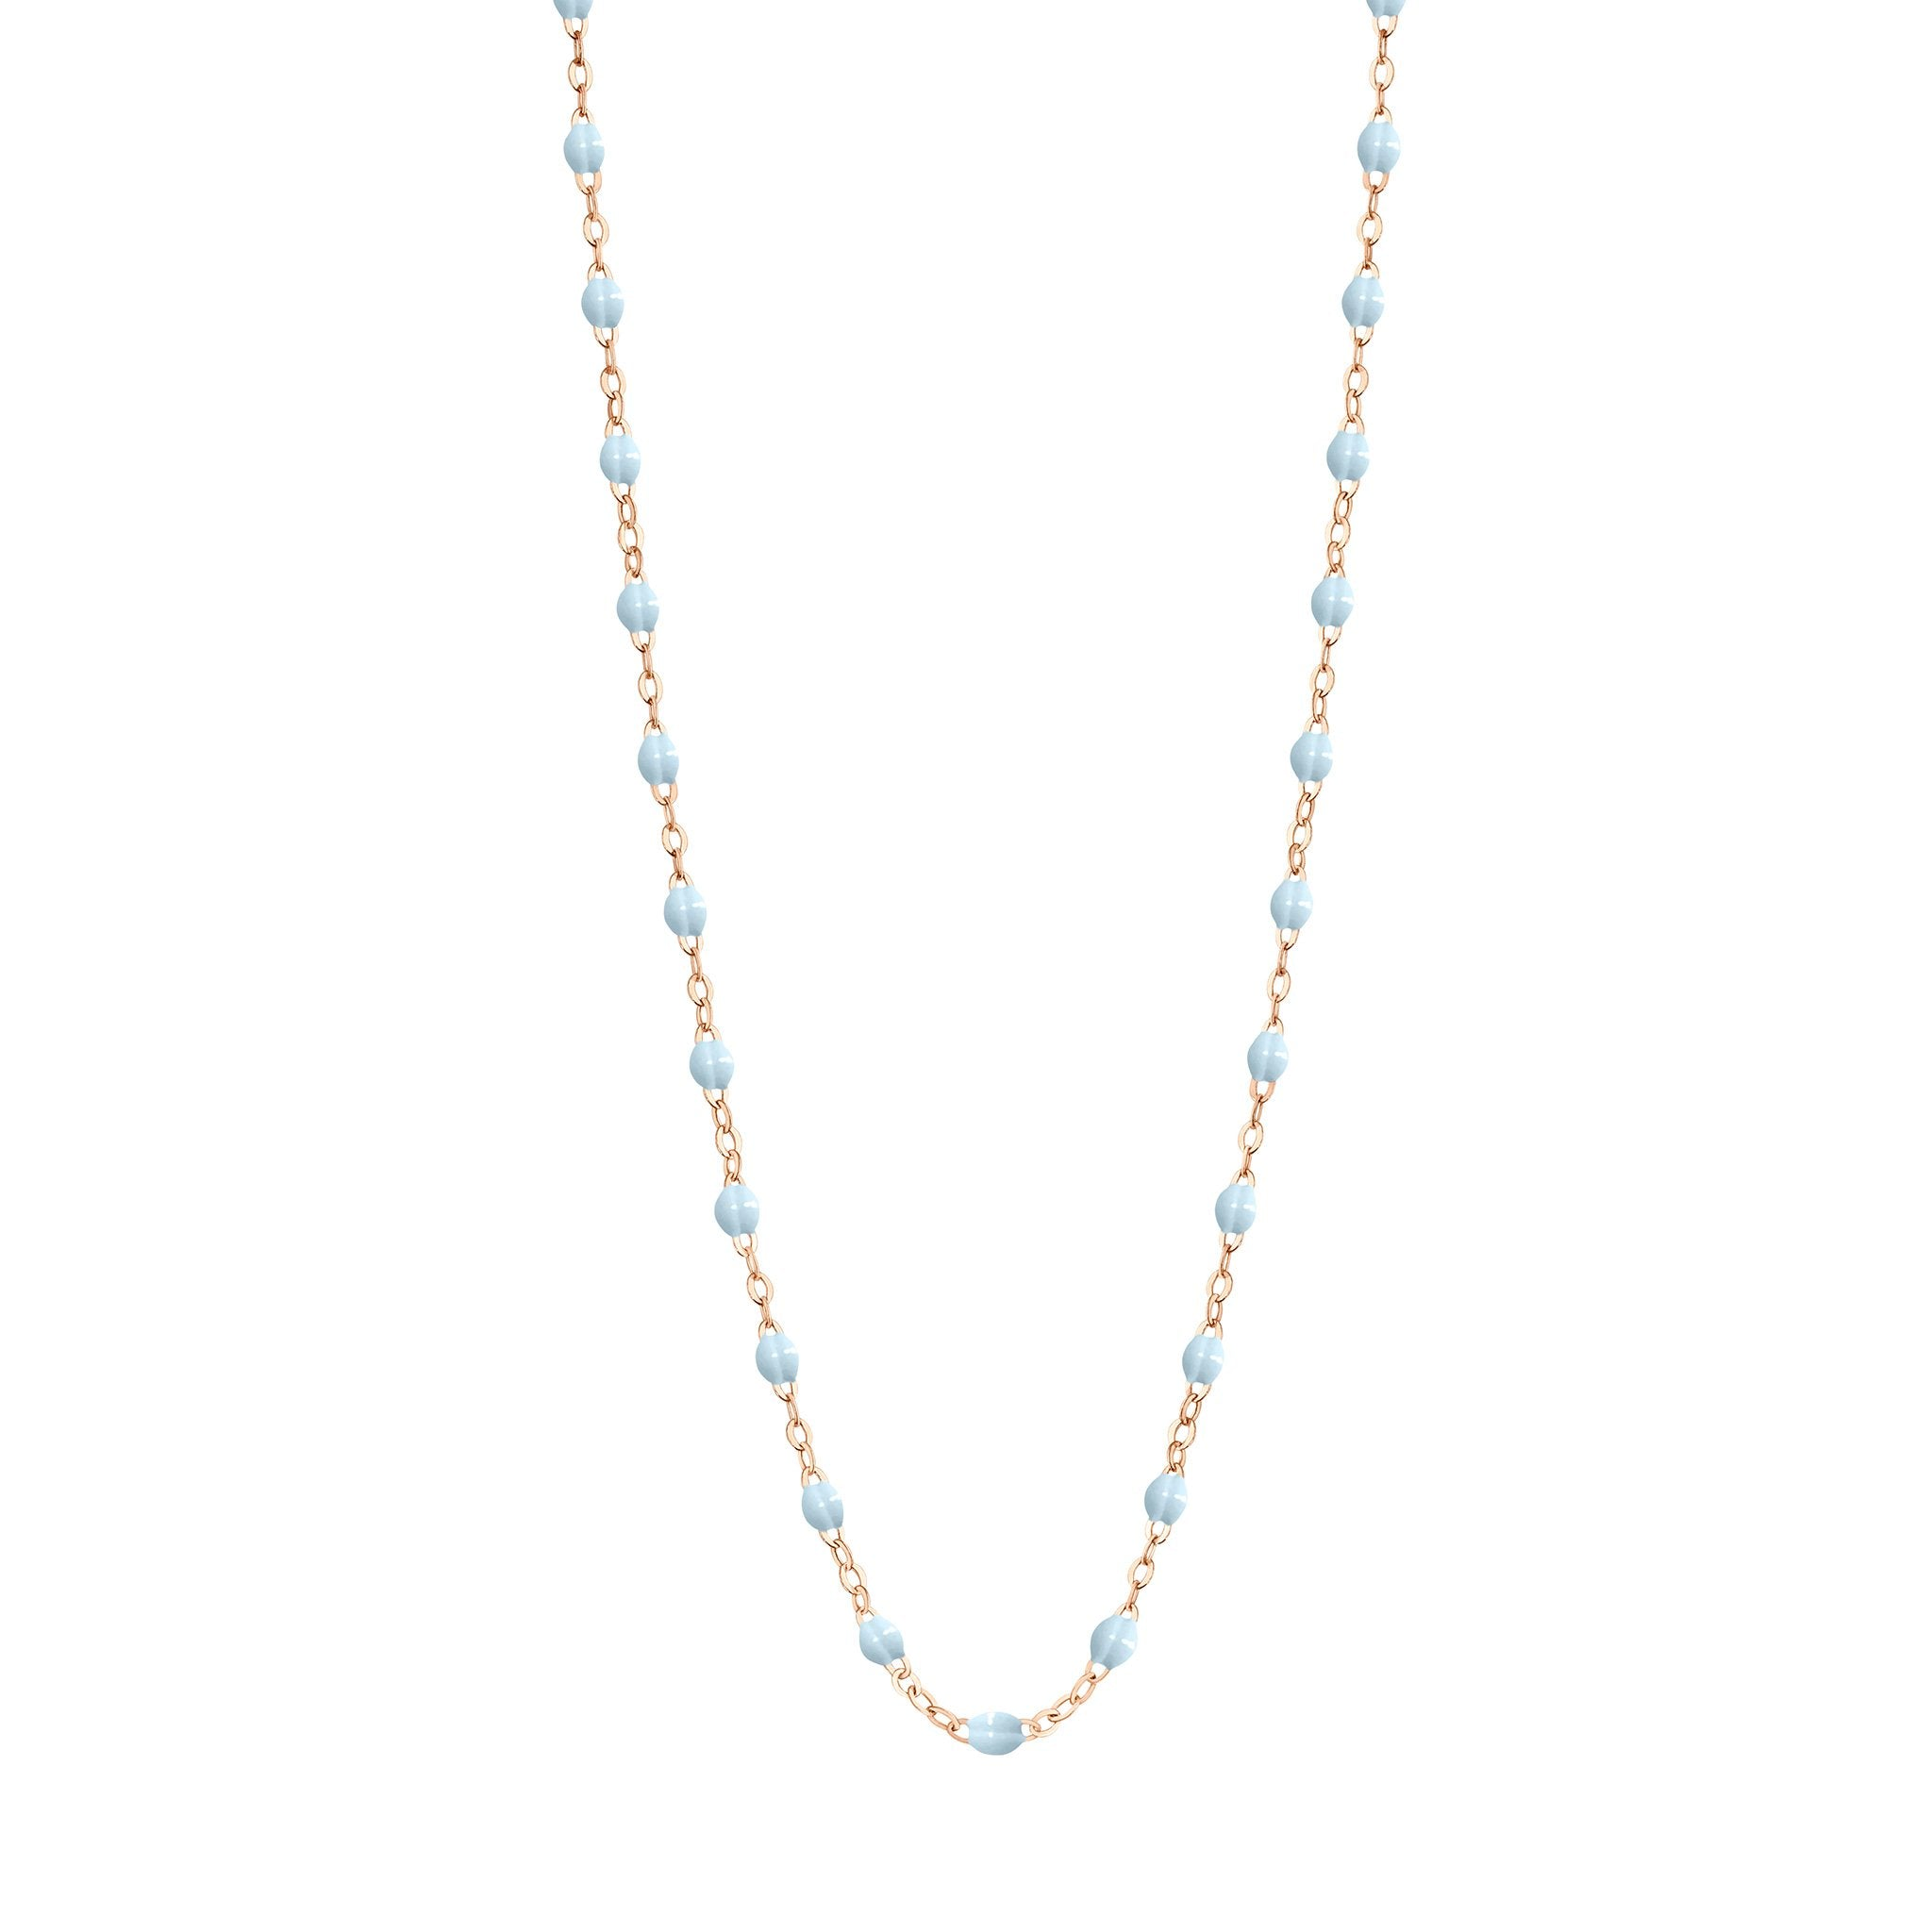 Gigi Clozeau - Classic Gigi Baby Blue necklace, Rose Gold, 16.5""